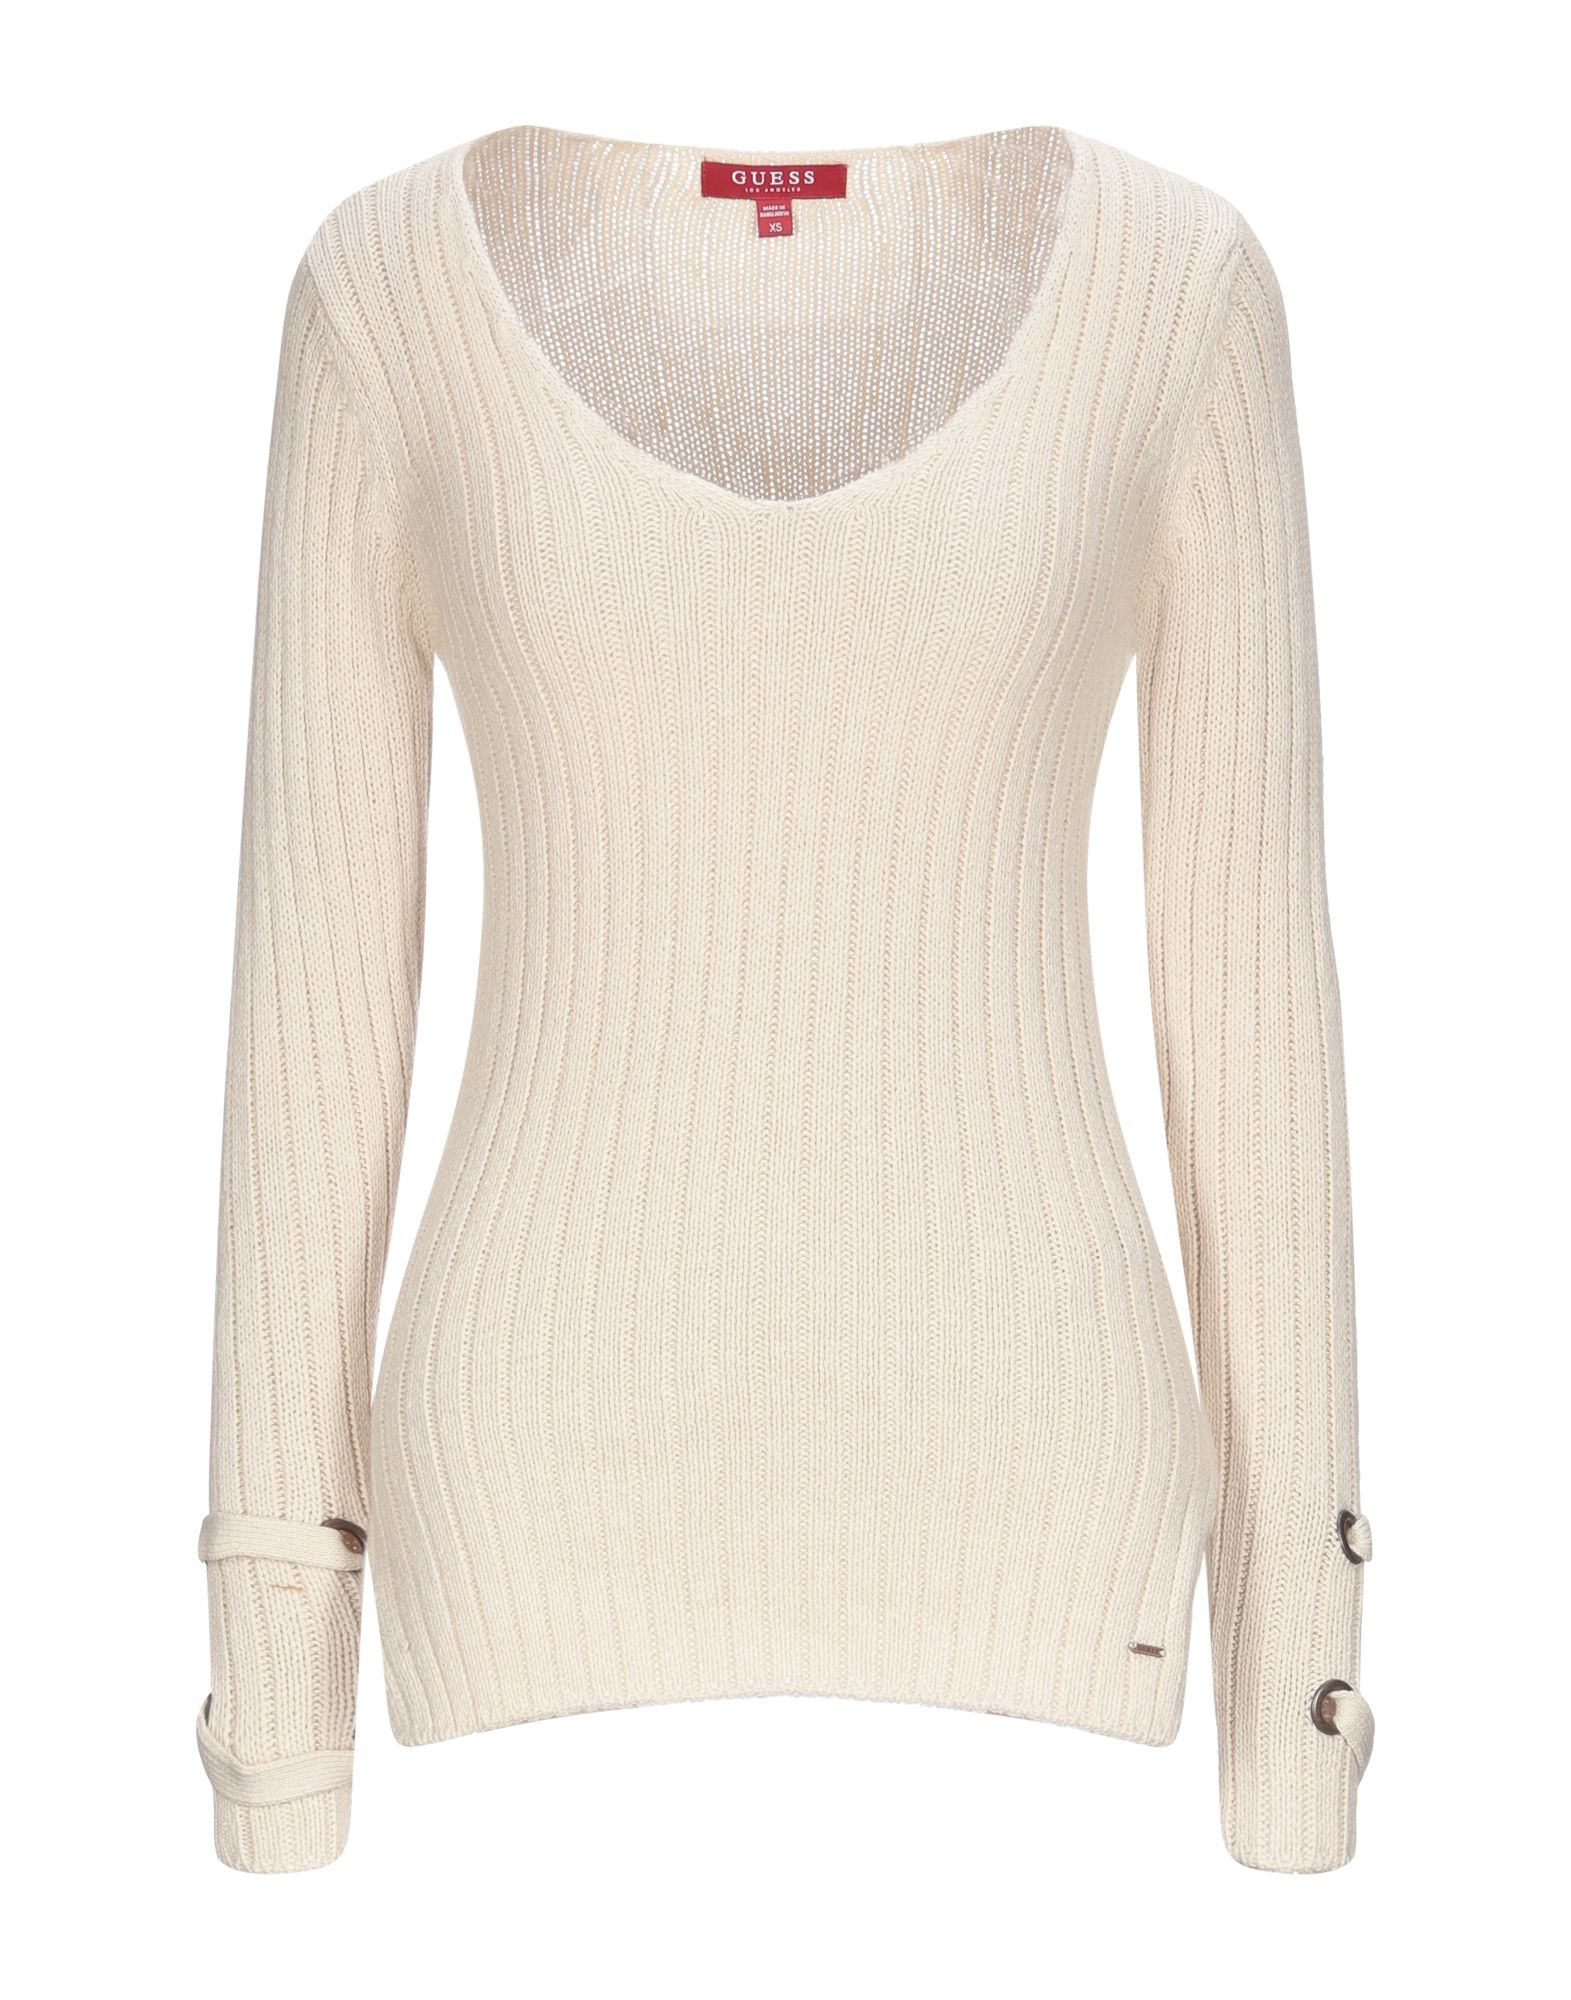 GUESS Sweaters - Item 14084877